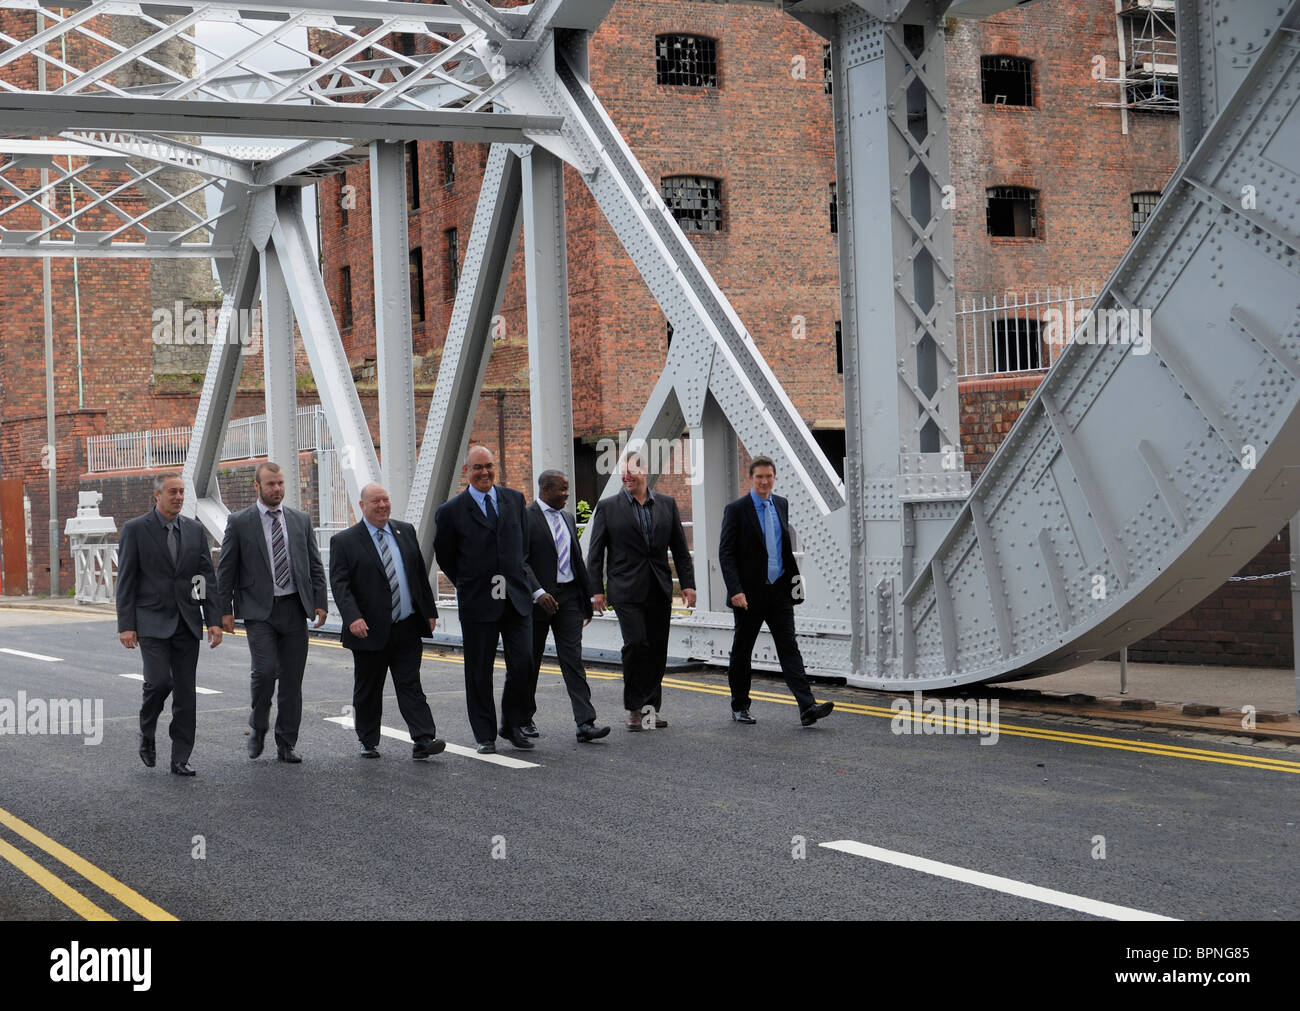 Dignitaries walking across the Bascule Bridge after the opening ceremony performed by Joe Anderson and Ian Porritt. - Stock Image